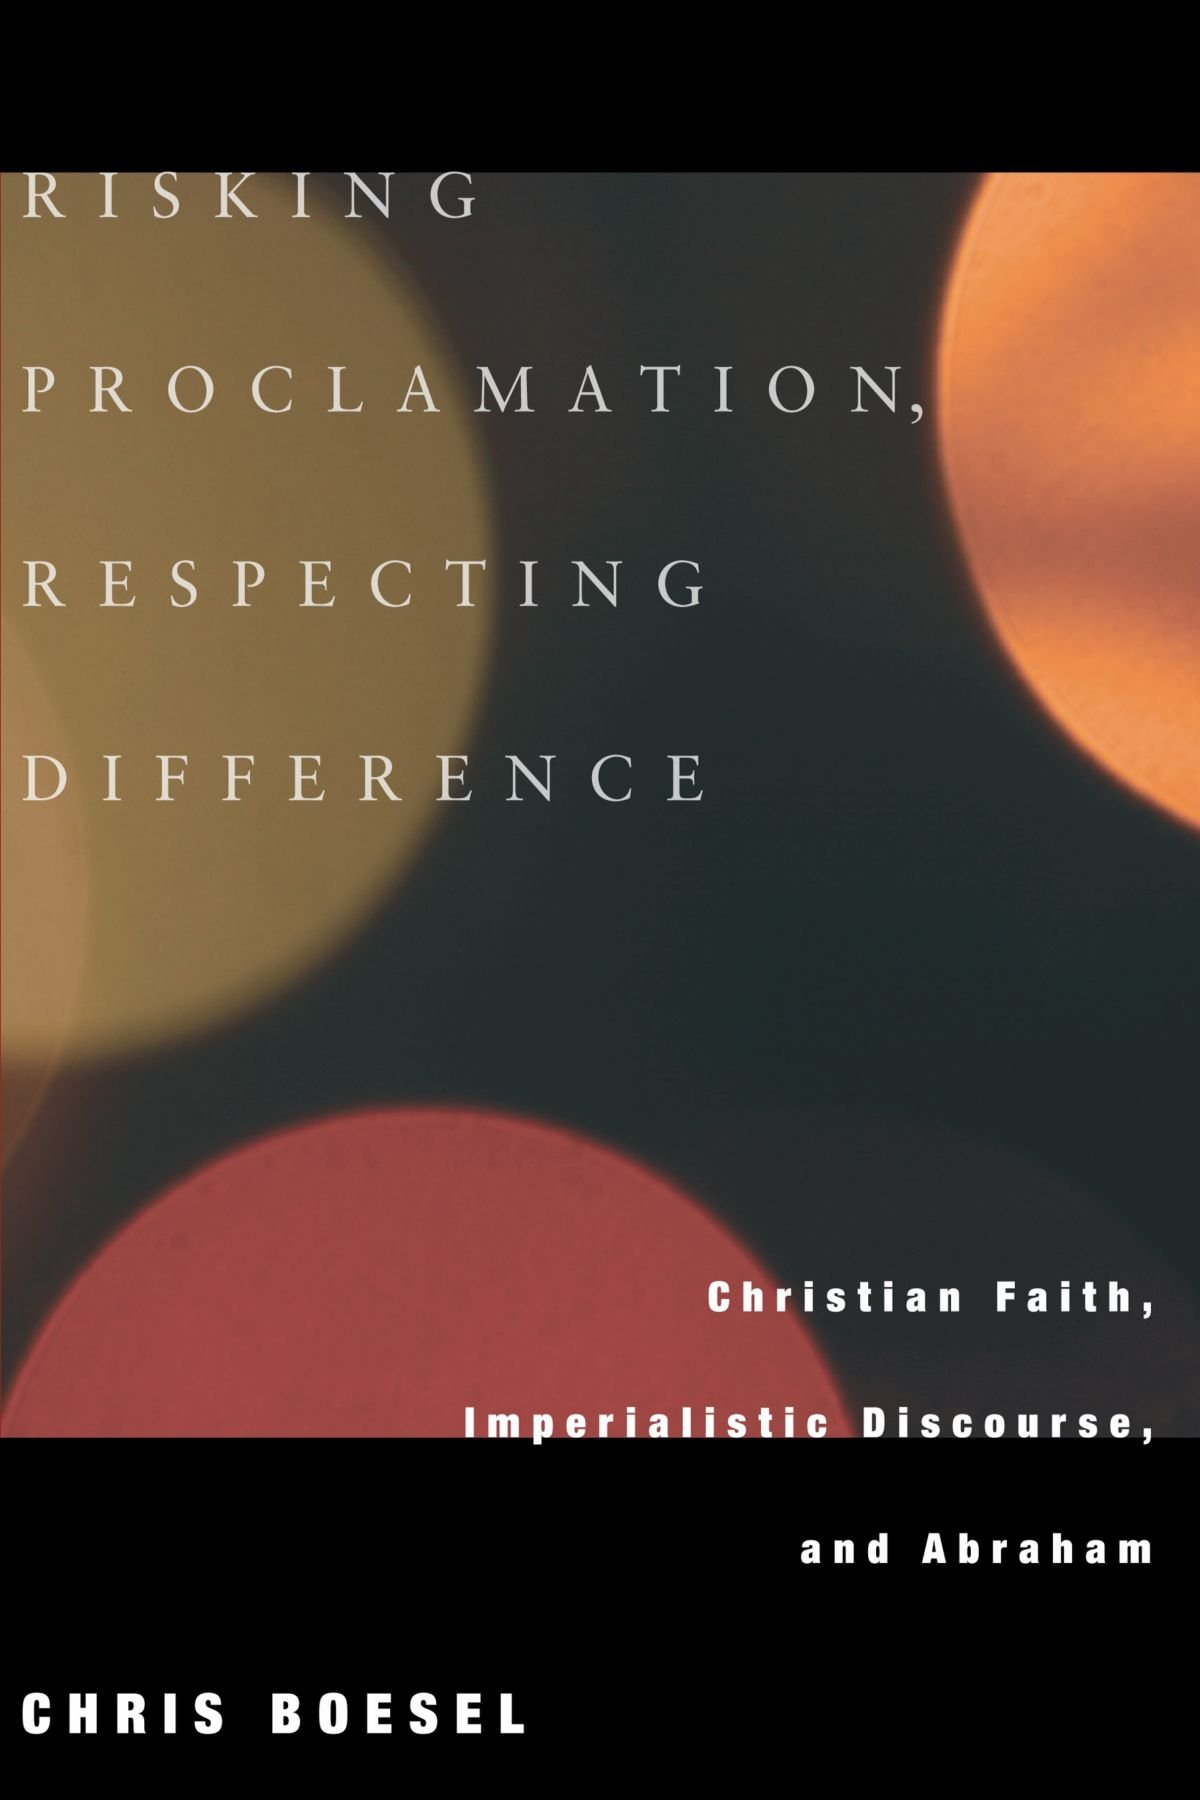 Download Risking Proclamation, Respecting Difference: Christian Faith, Imperialistic Discourse, and Abraham PDF